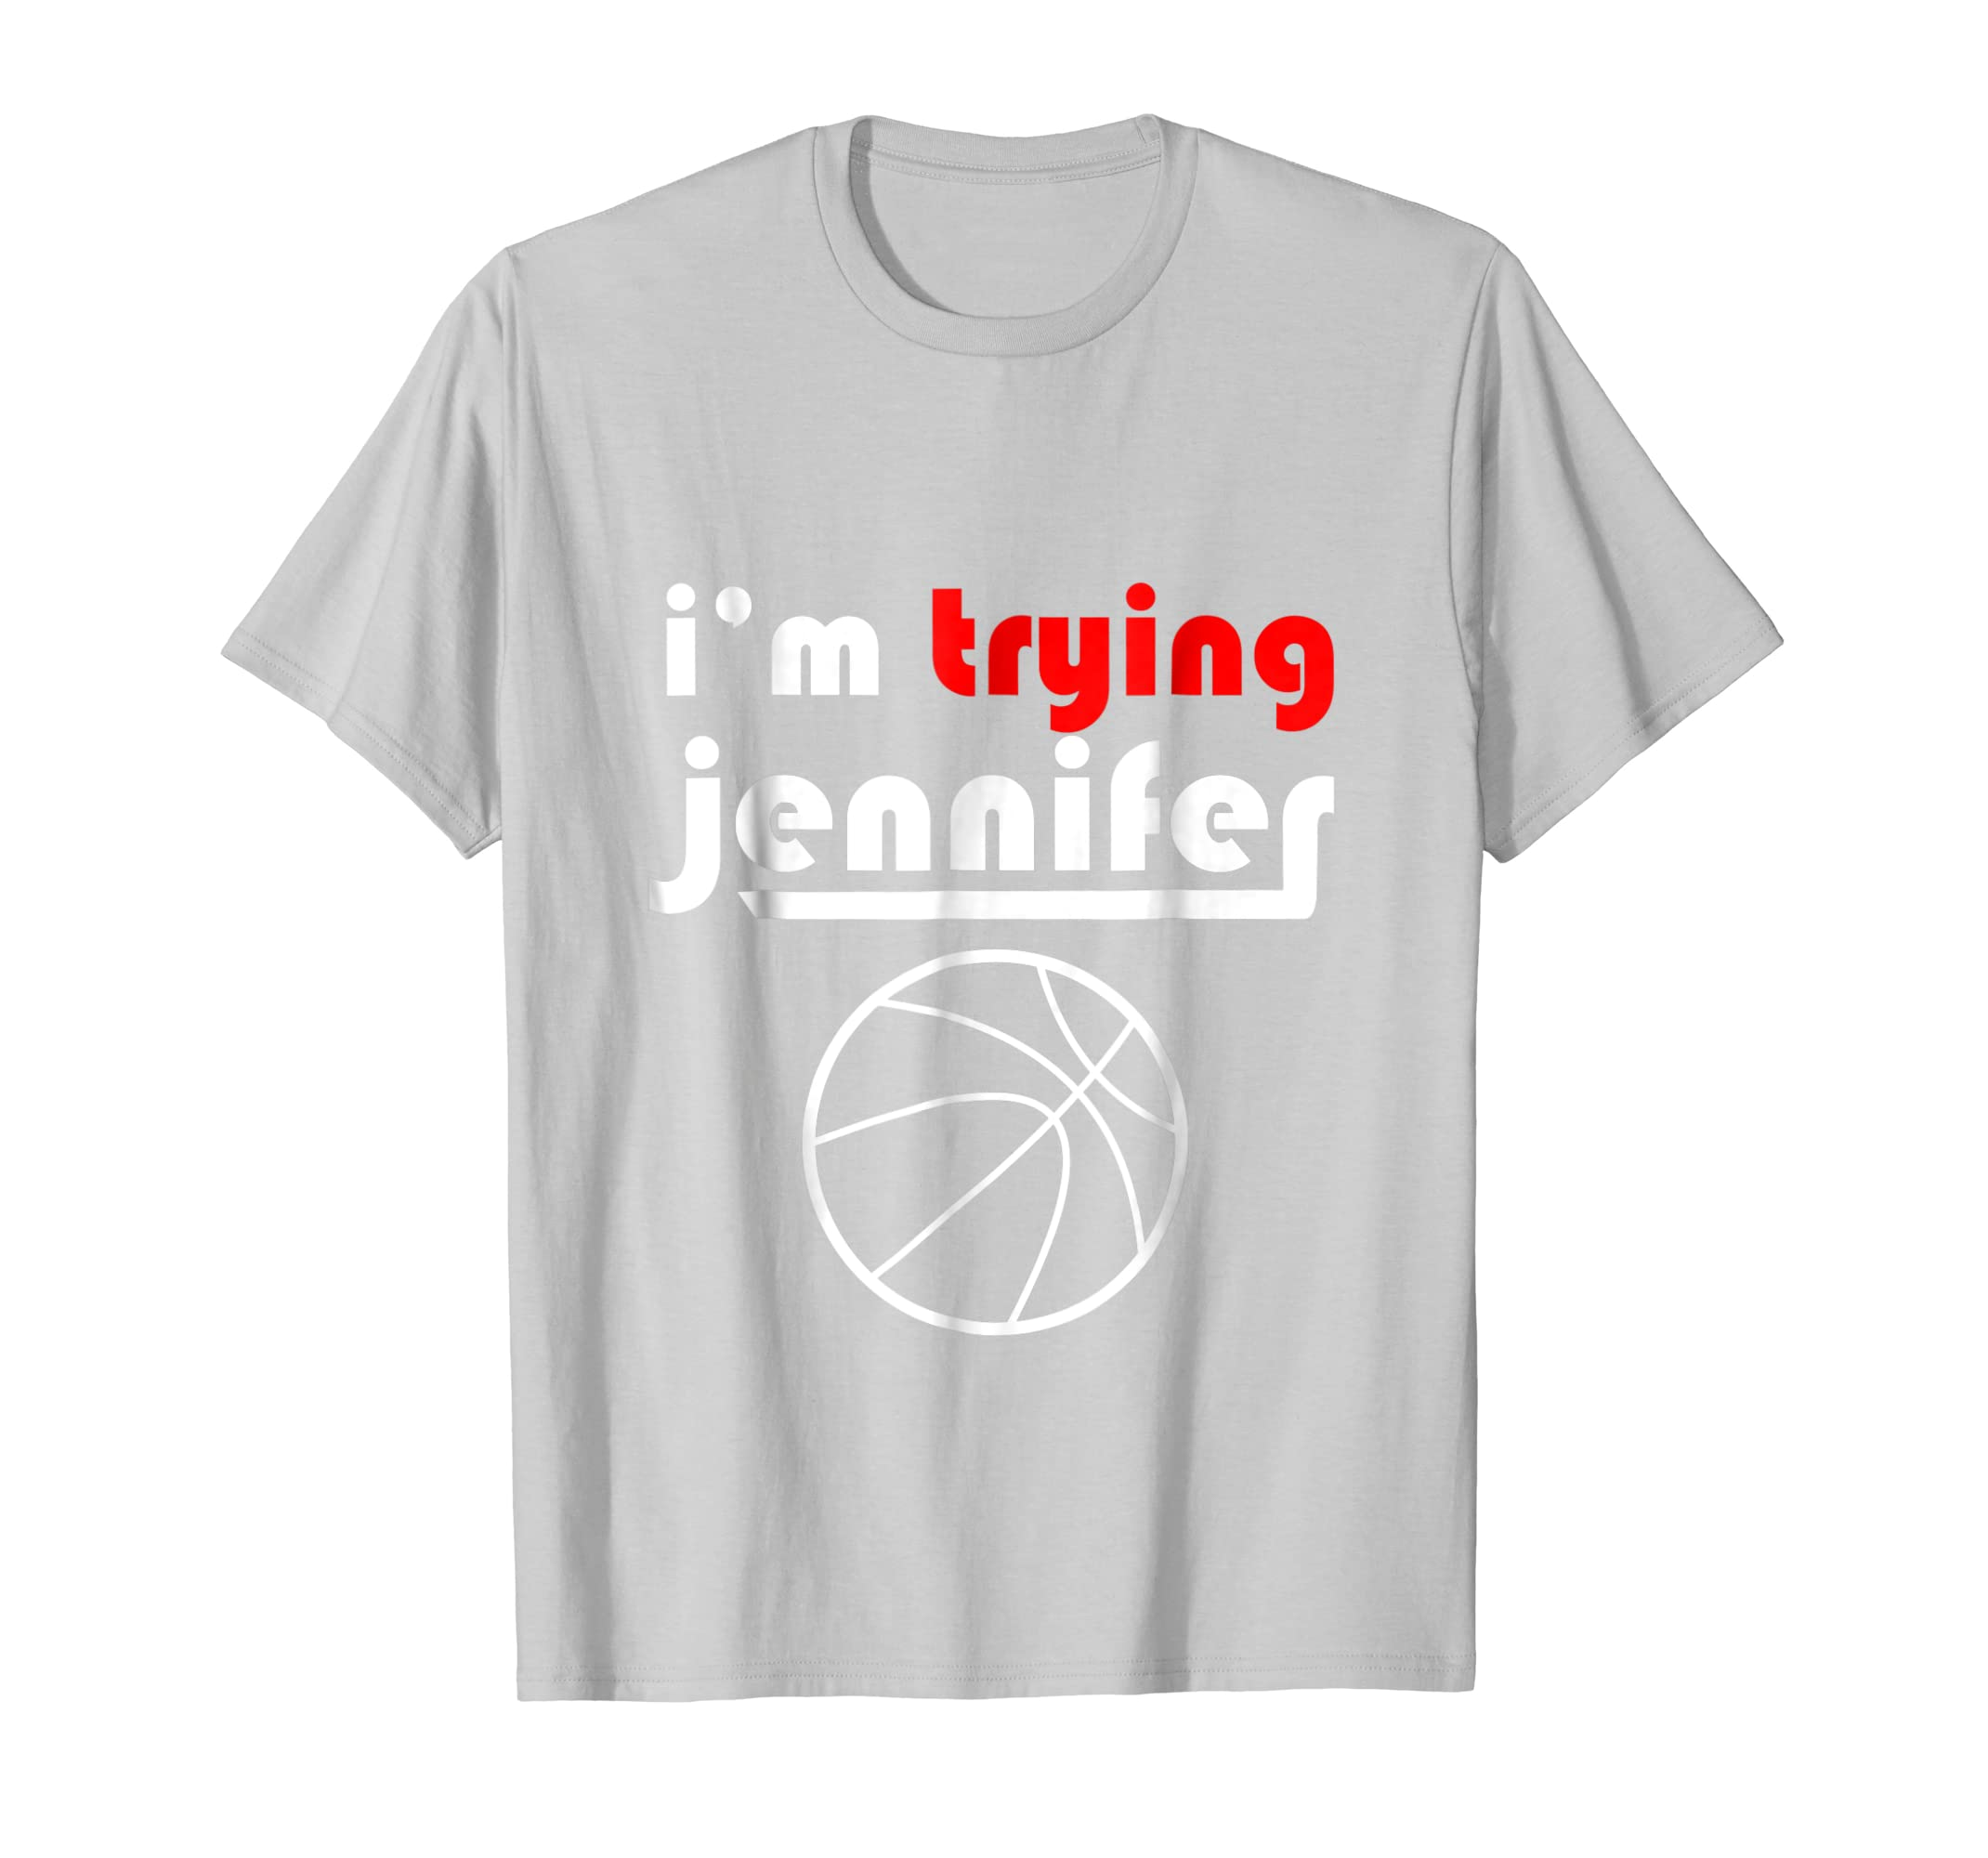 caddce03 Funny Basketball Sayings For Shirts - DREAMWORKS